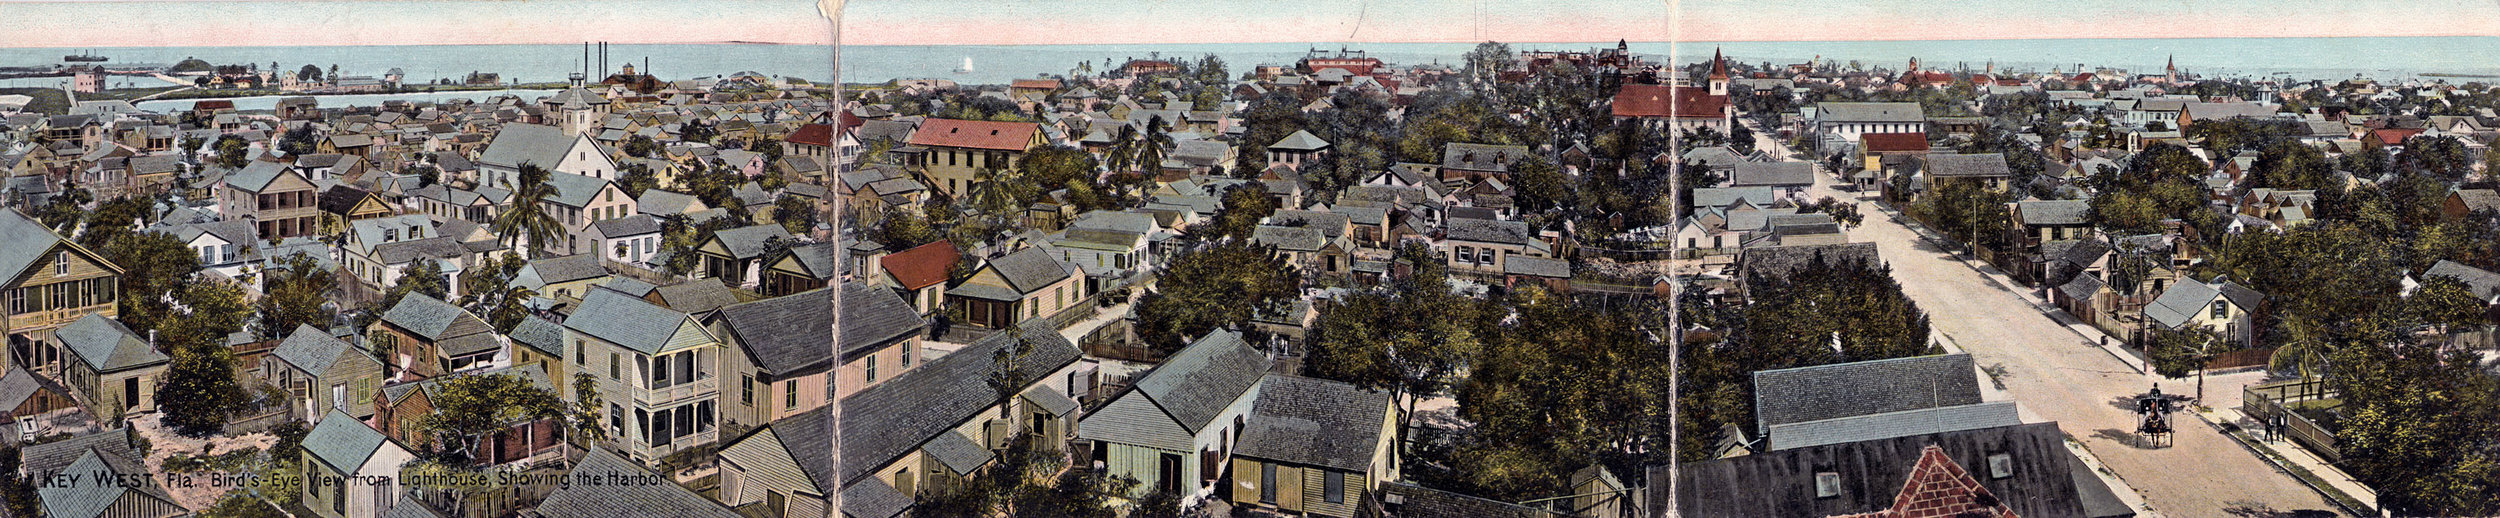 KW-Panorama-1910-color-web.jpg